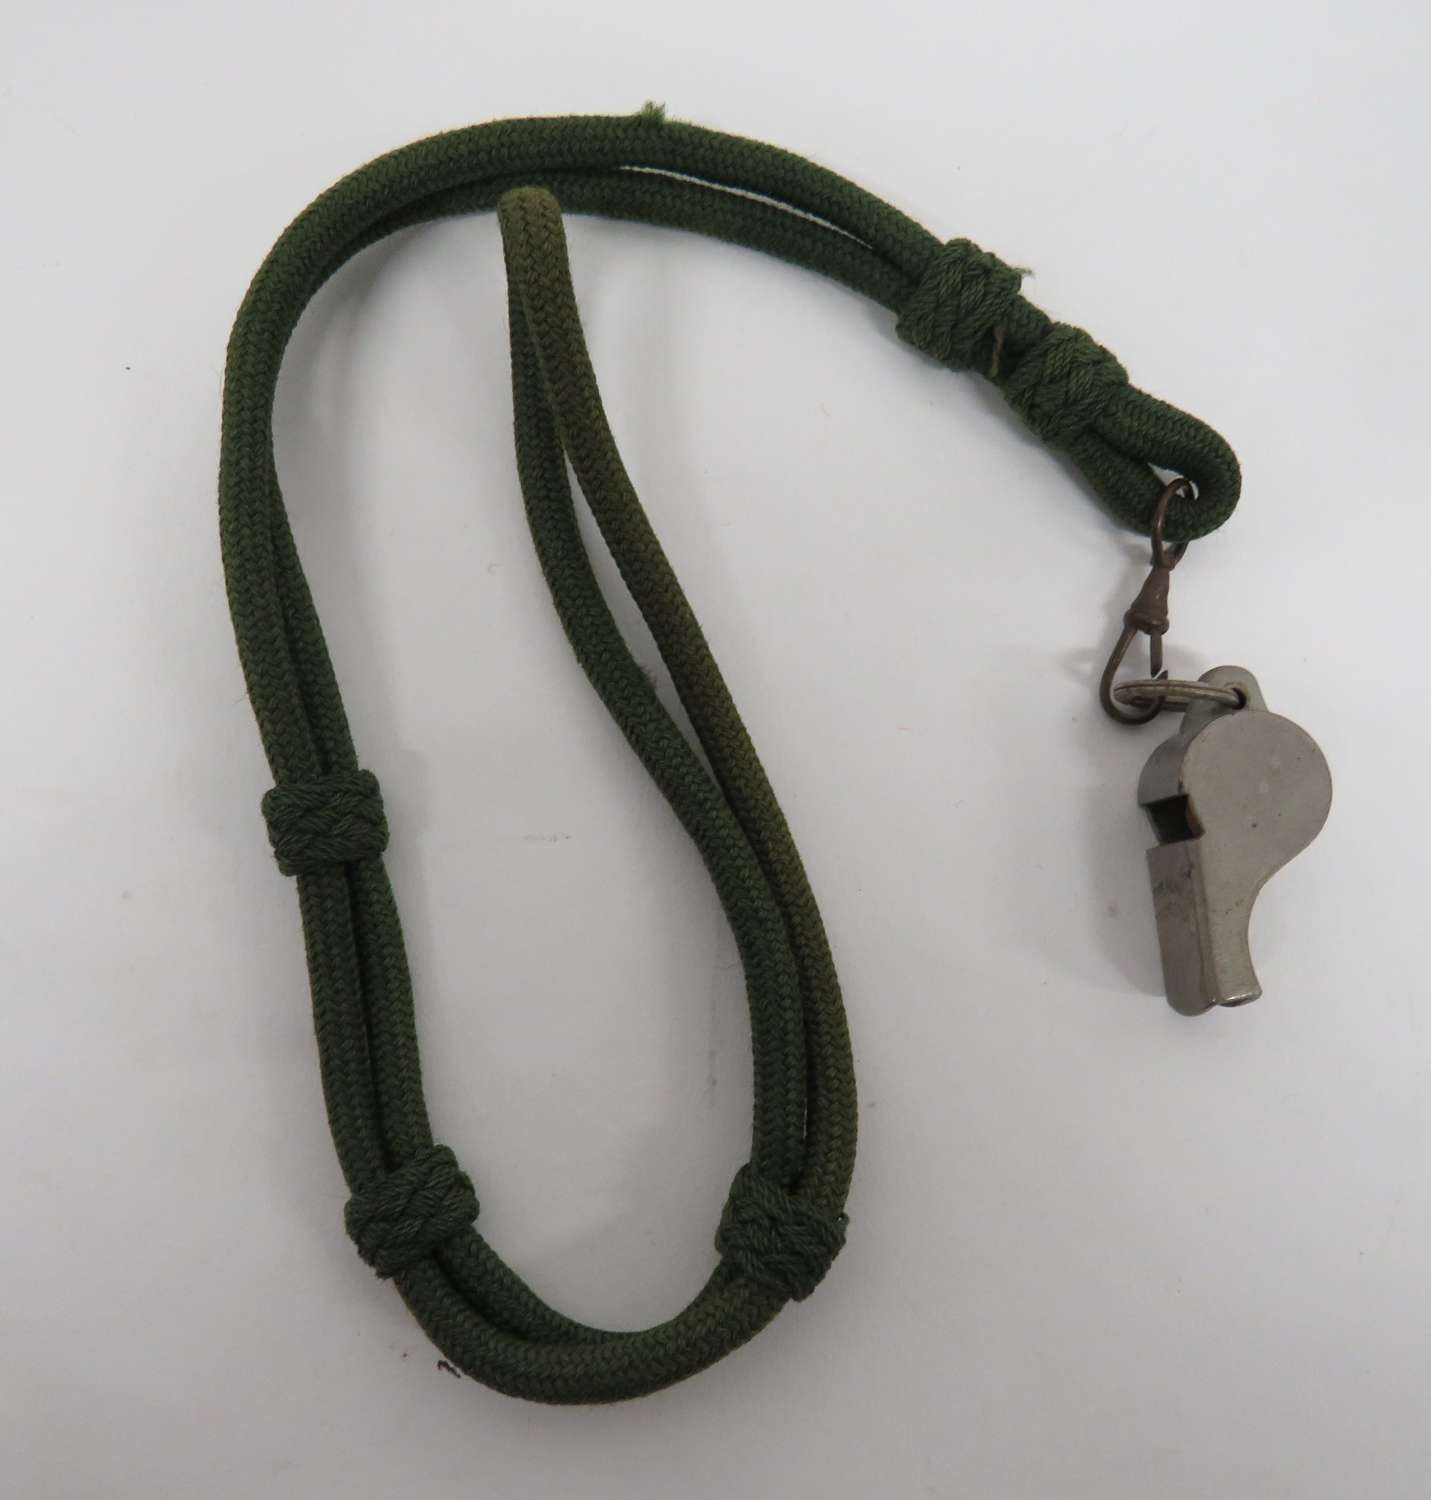 Rifles Officers Lanyard and Whistle